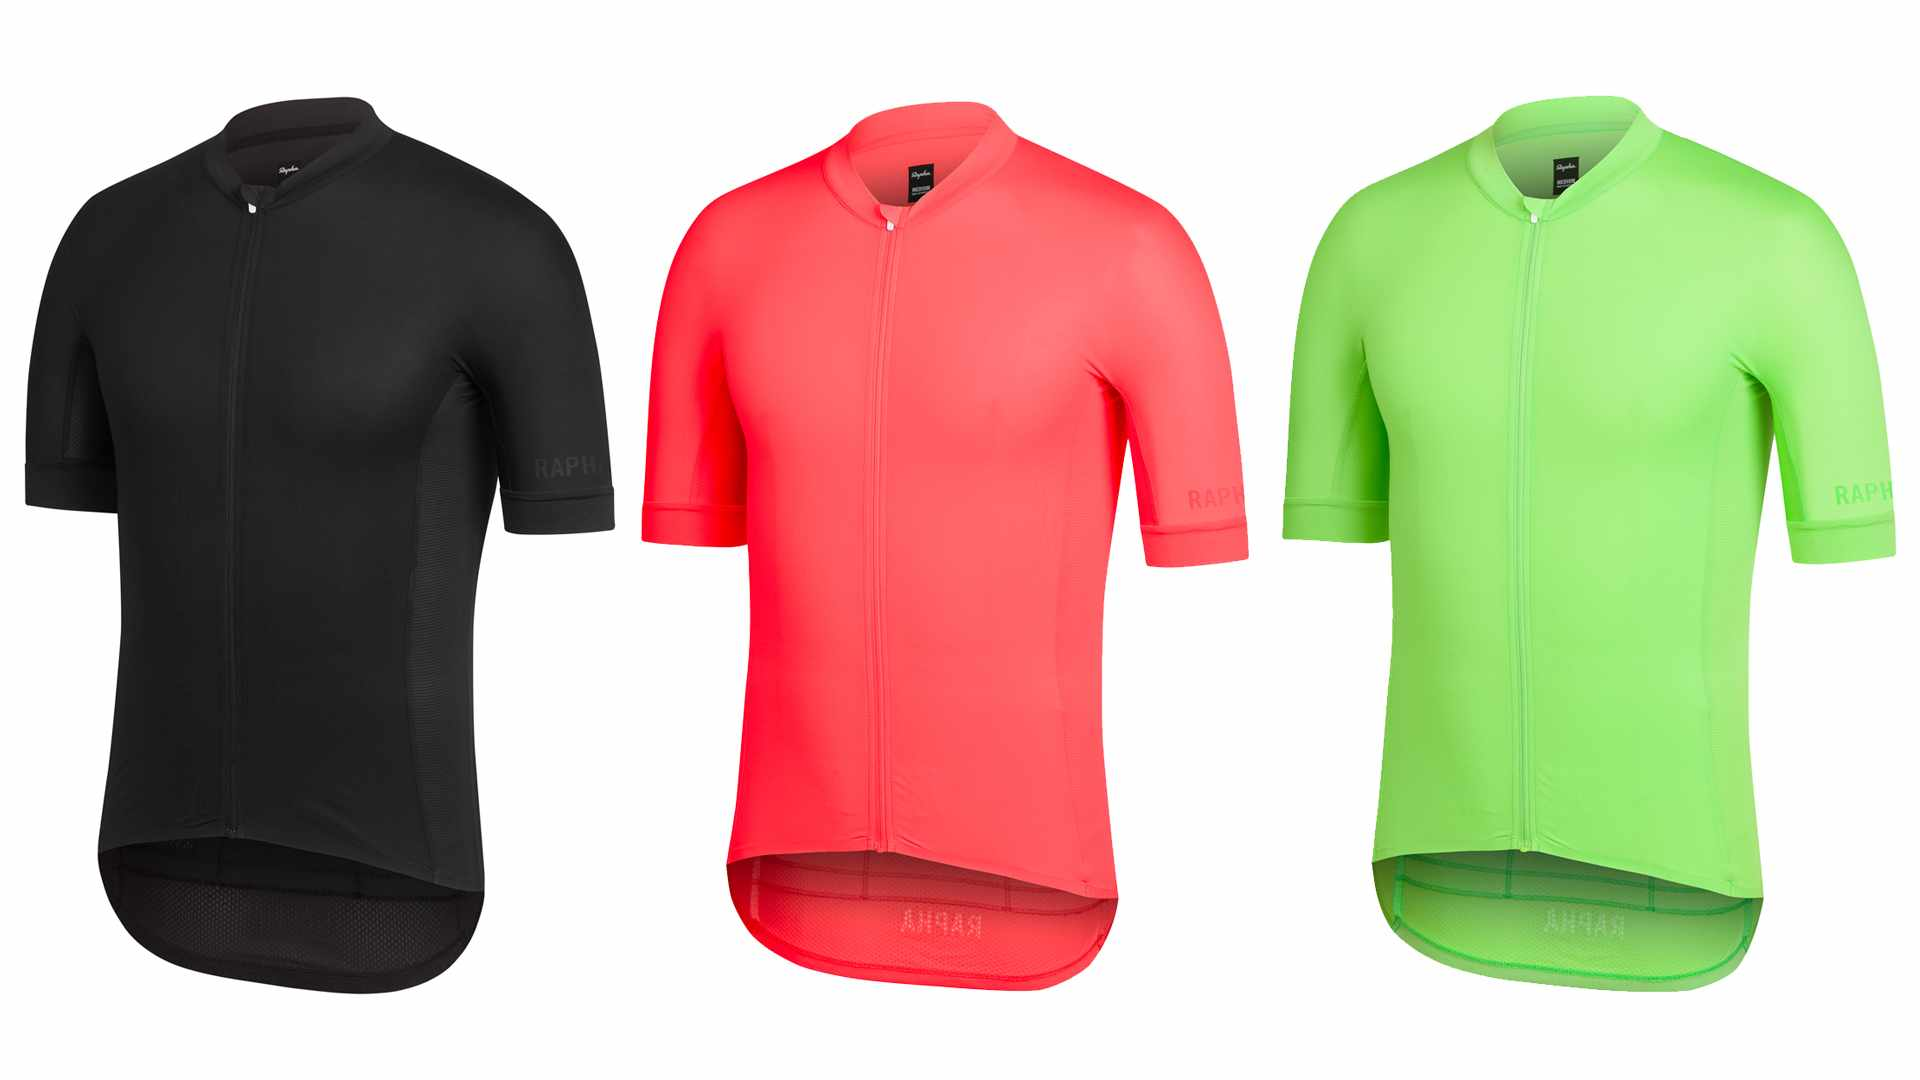 The new Rapha Pro Team Aero Jersey comes in black, fiery coral and green flash